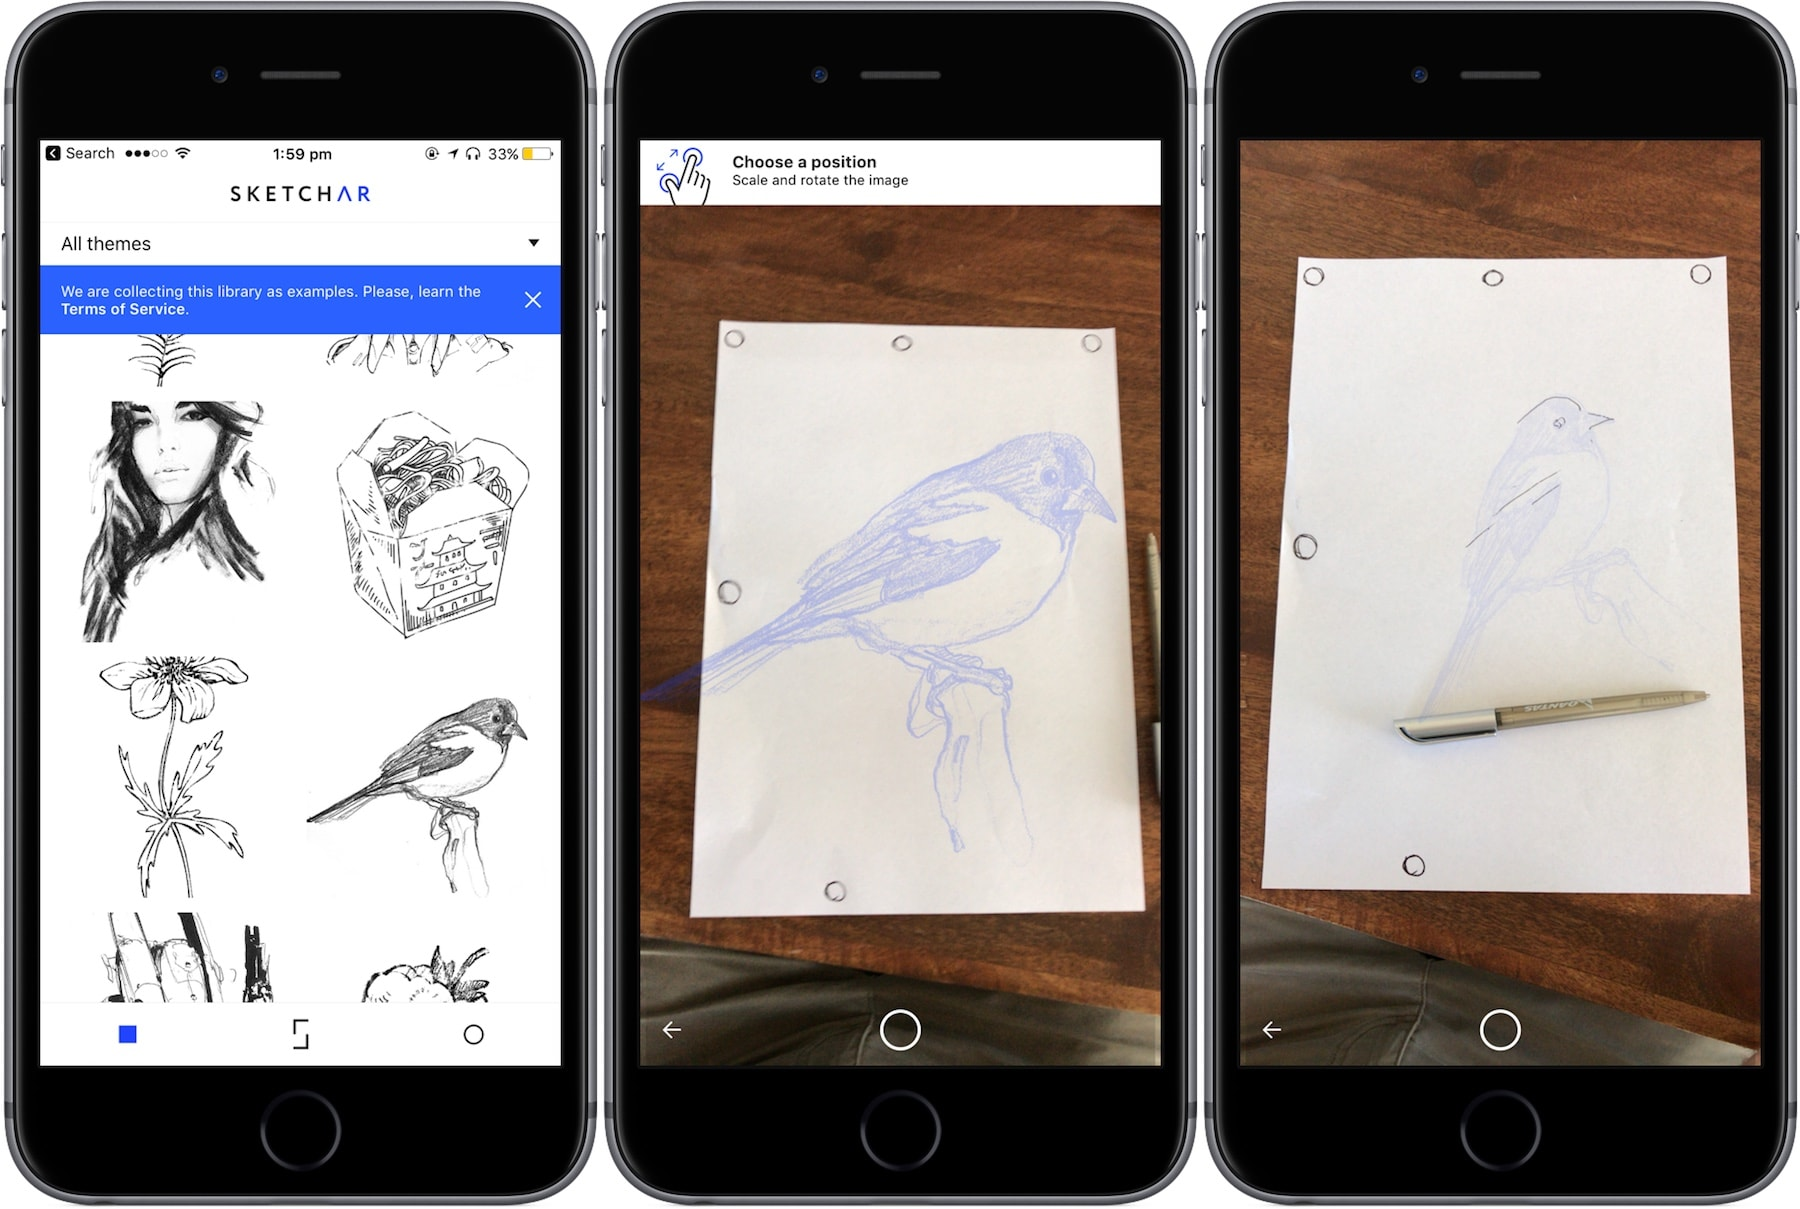 best augmented reality apps iphone - sketchar